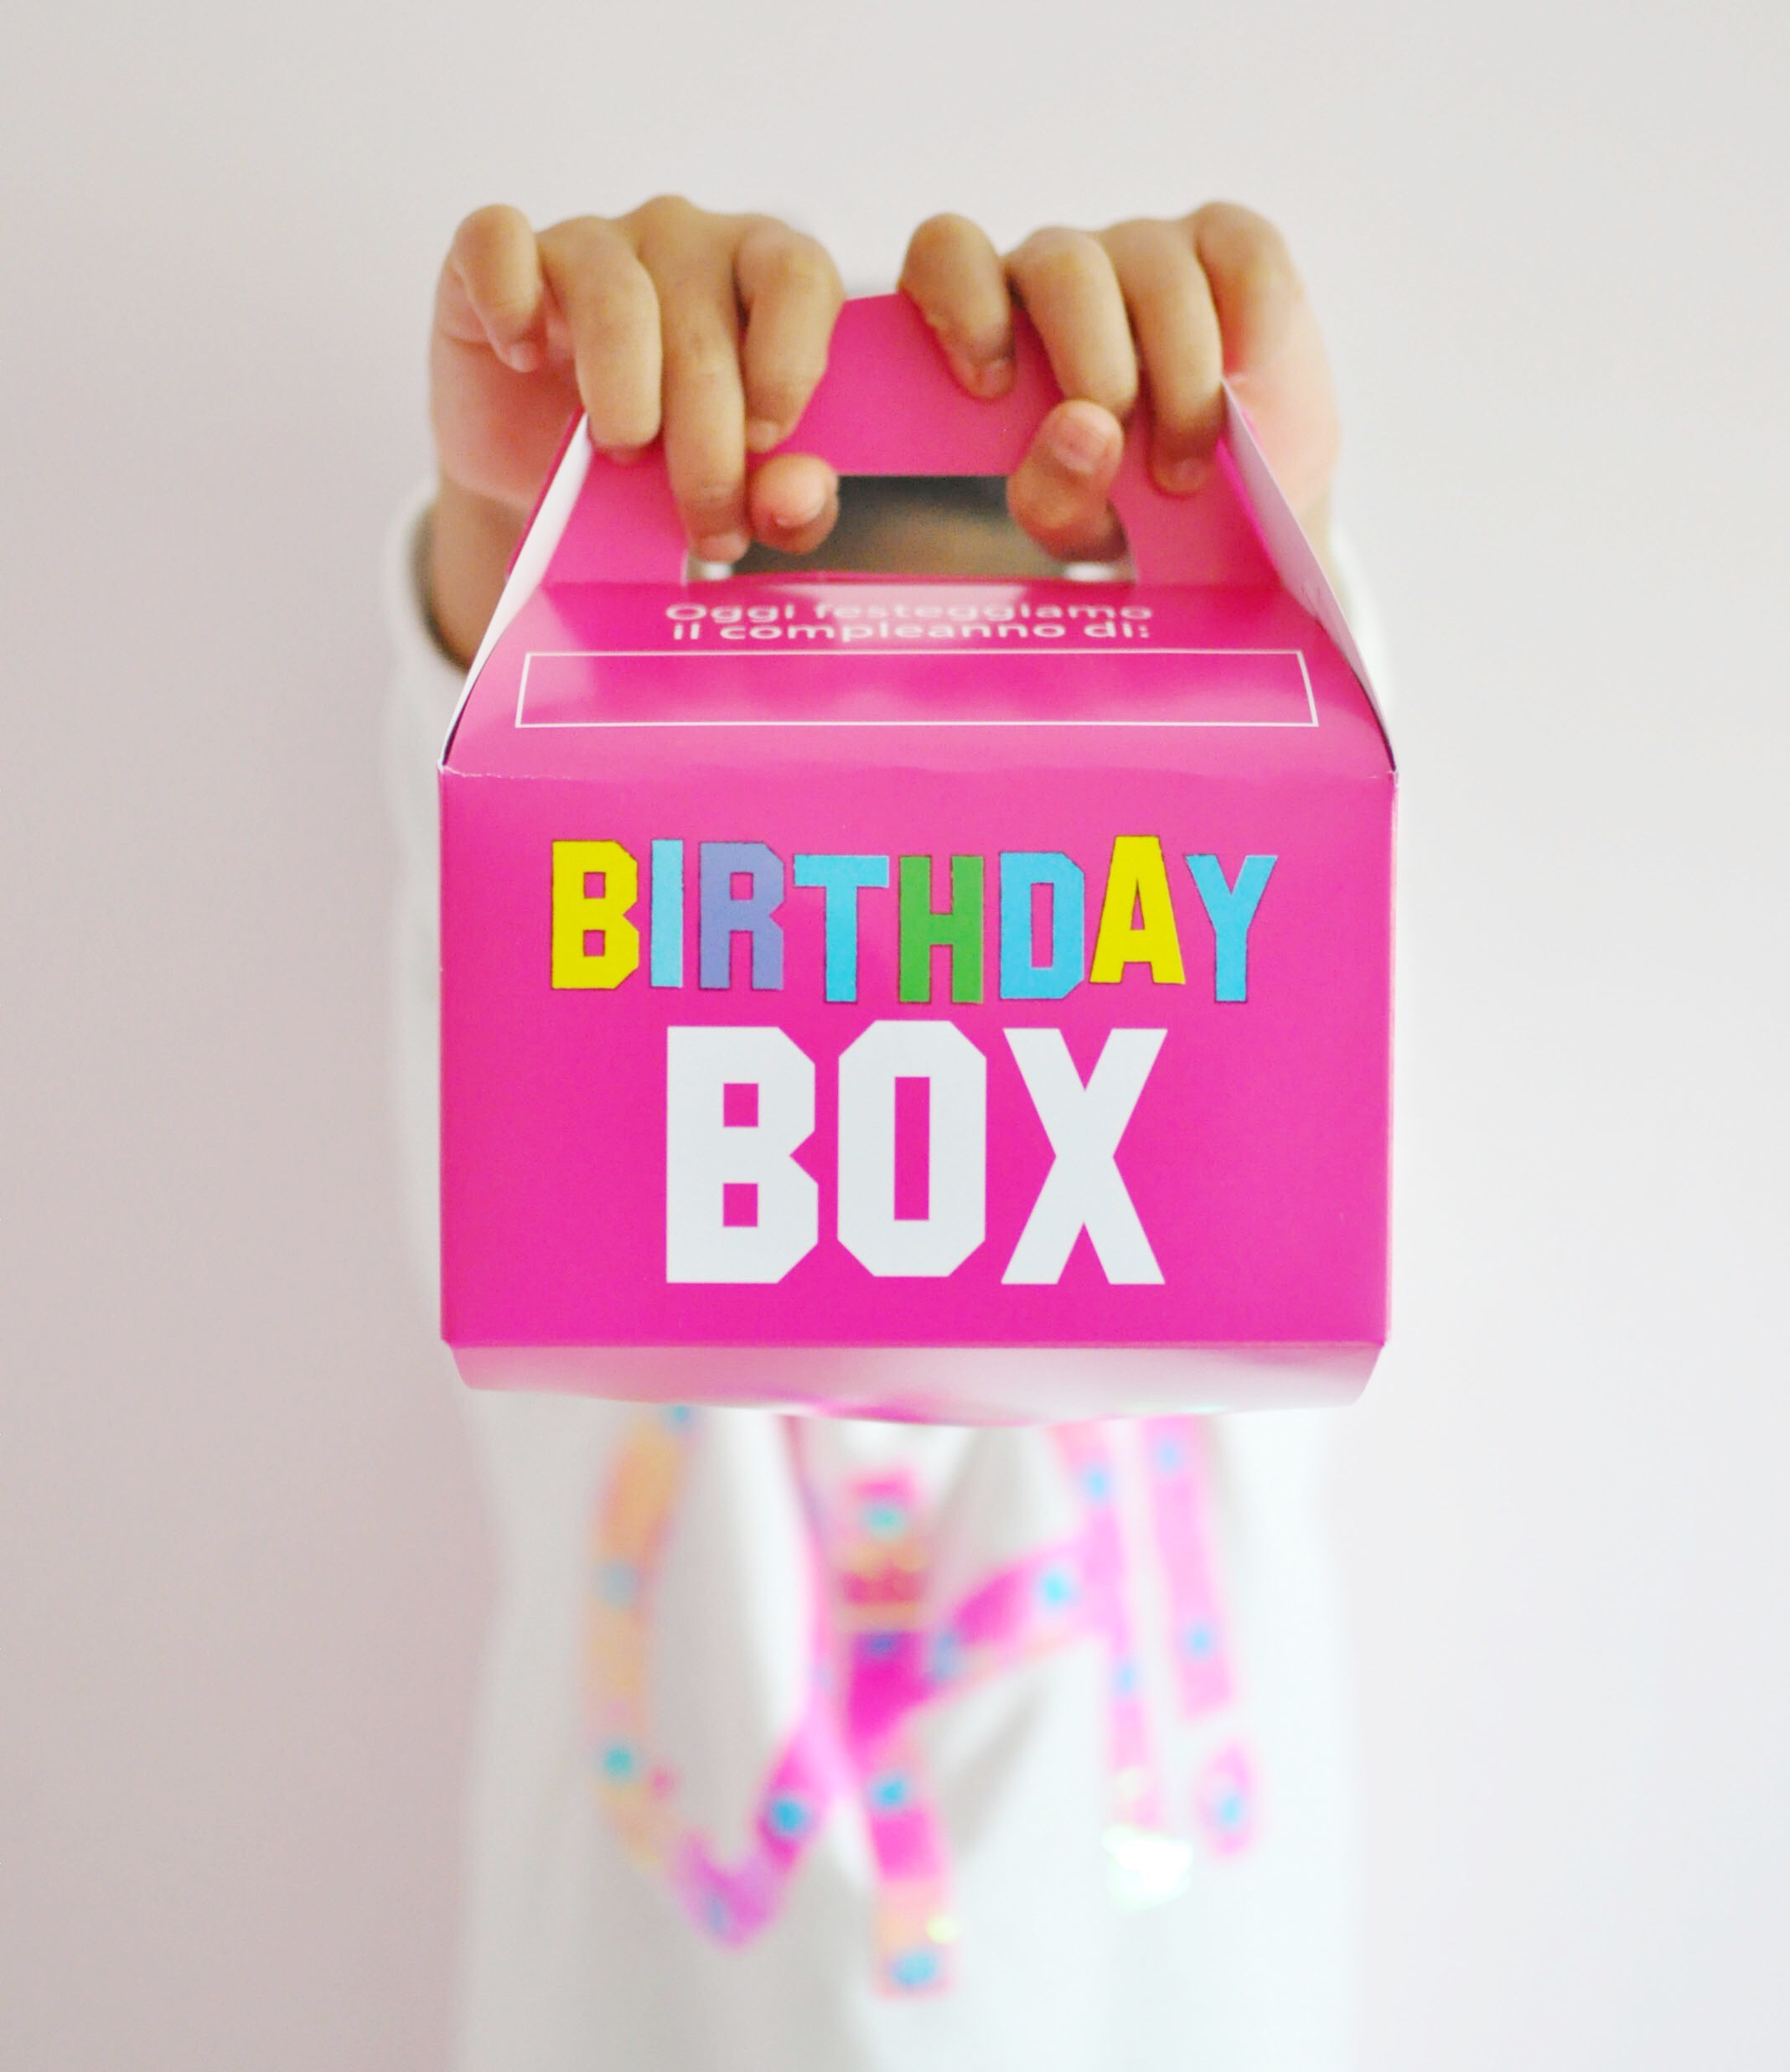 Birthday box – Festa in arrivo